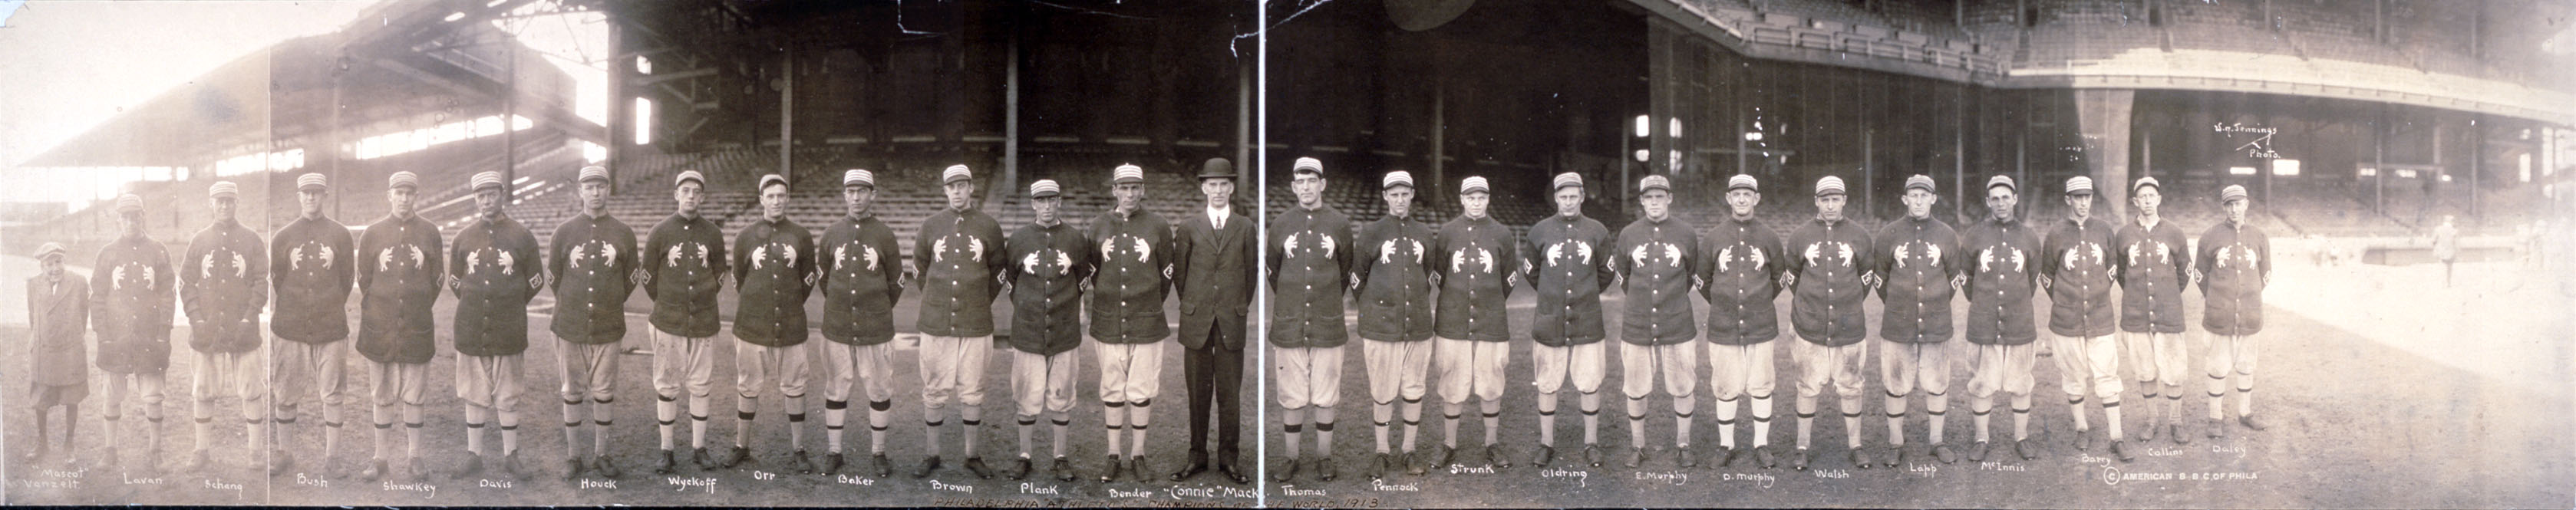 Philadelphia Athletics 1913 World Series Team Portrait